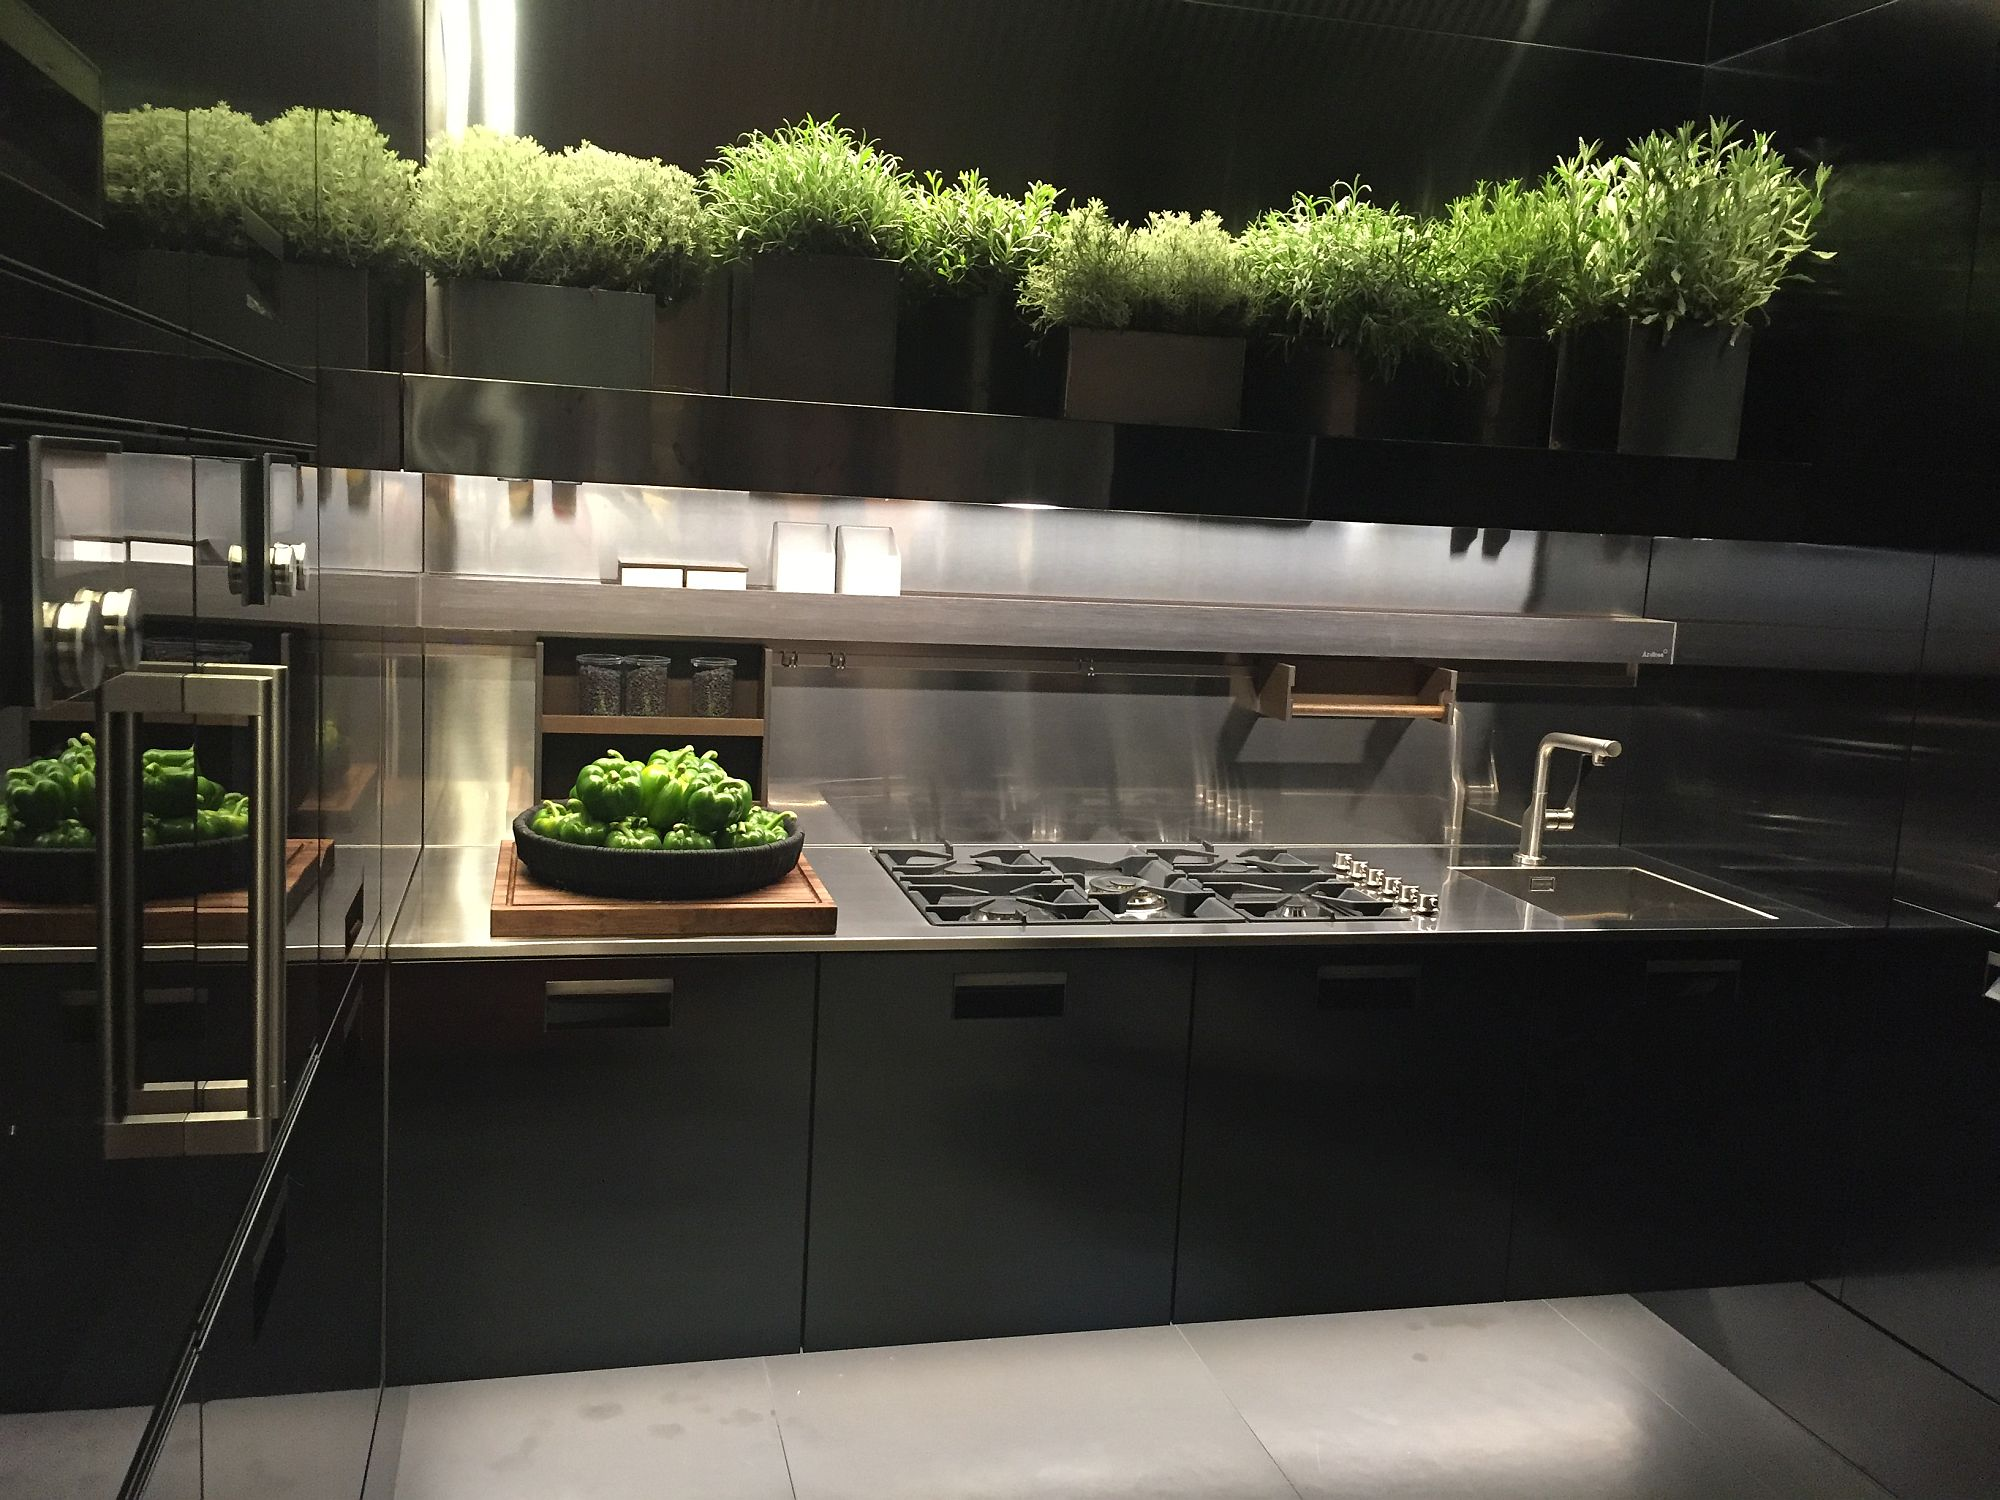 Kitchen decorating idea for those who love their herbs and green vegetables!